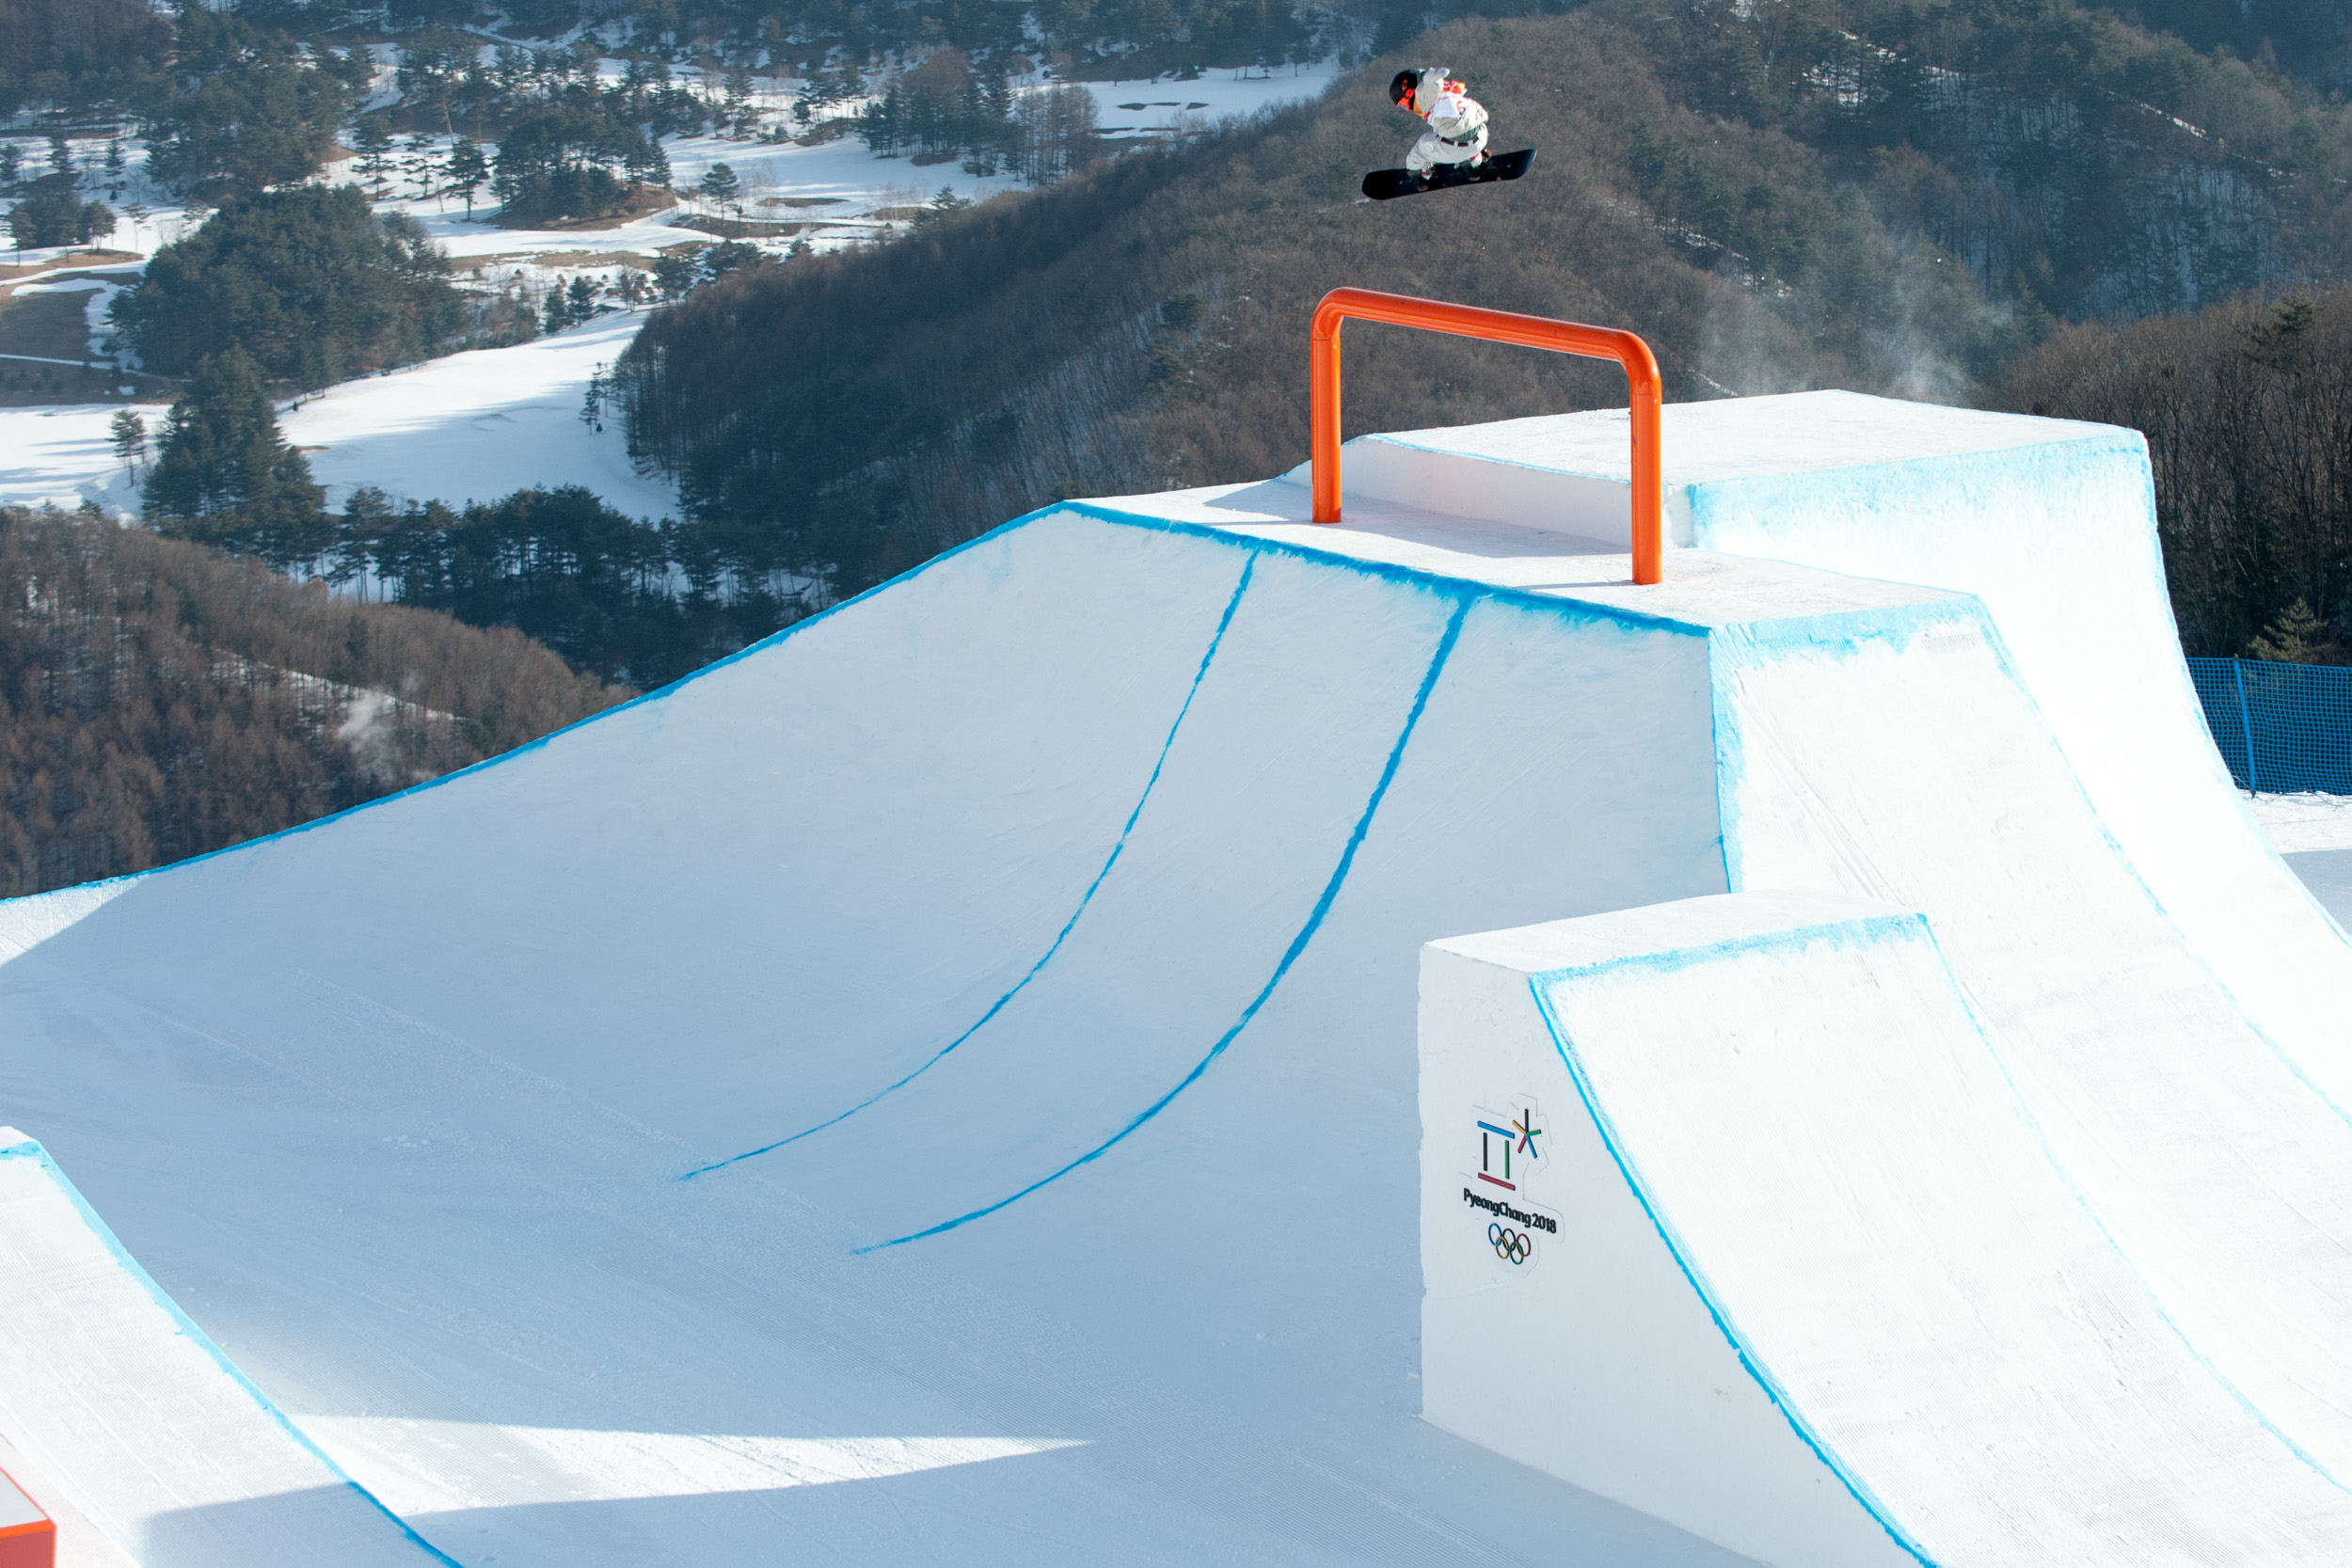 Canadian boys make noise at Winter Olympic men's snowboarding